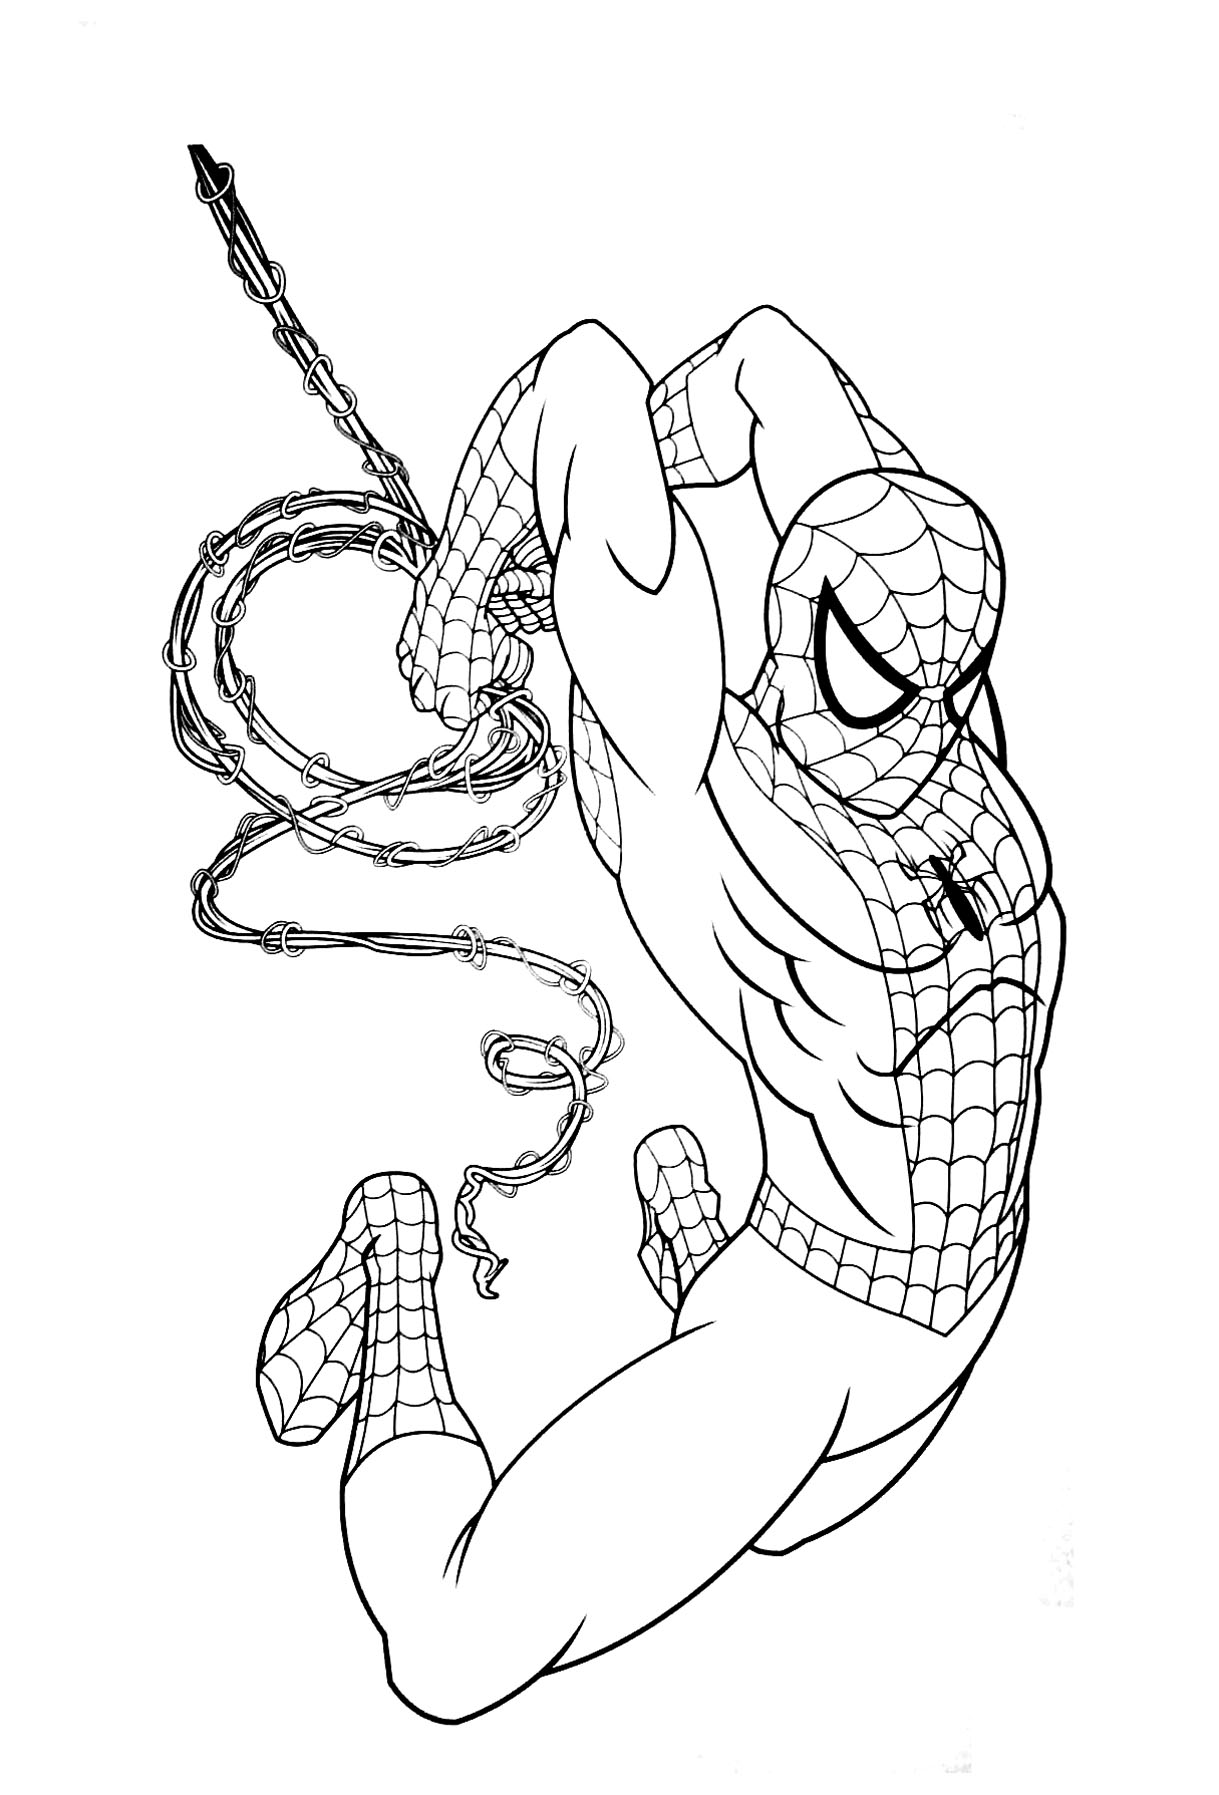 spiderman picture to color free printable spiderman coloring pages for kids picture spiderman color to